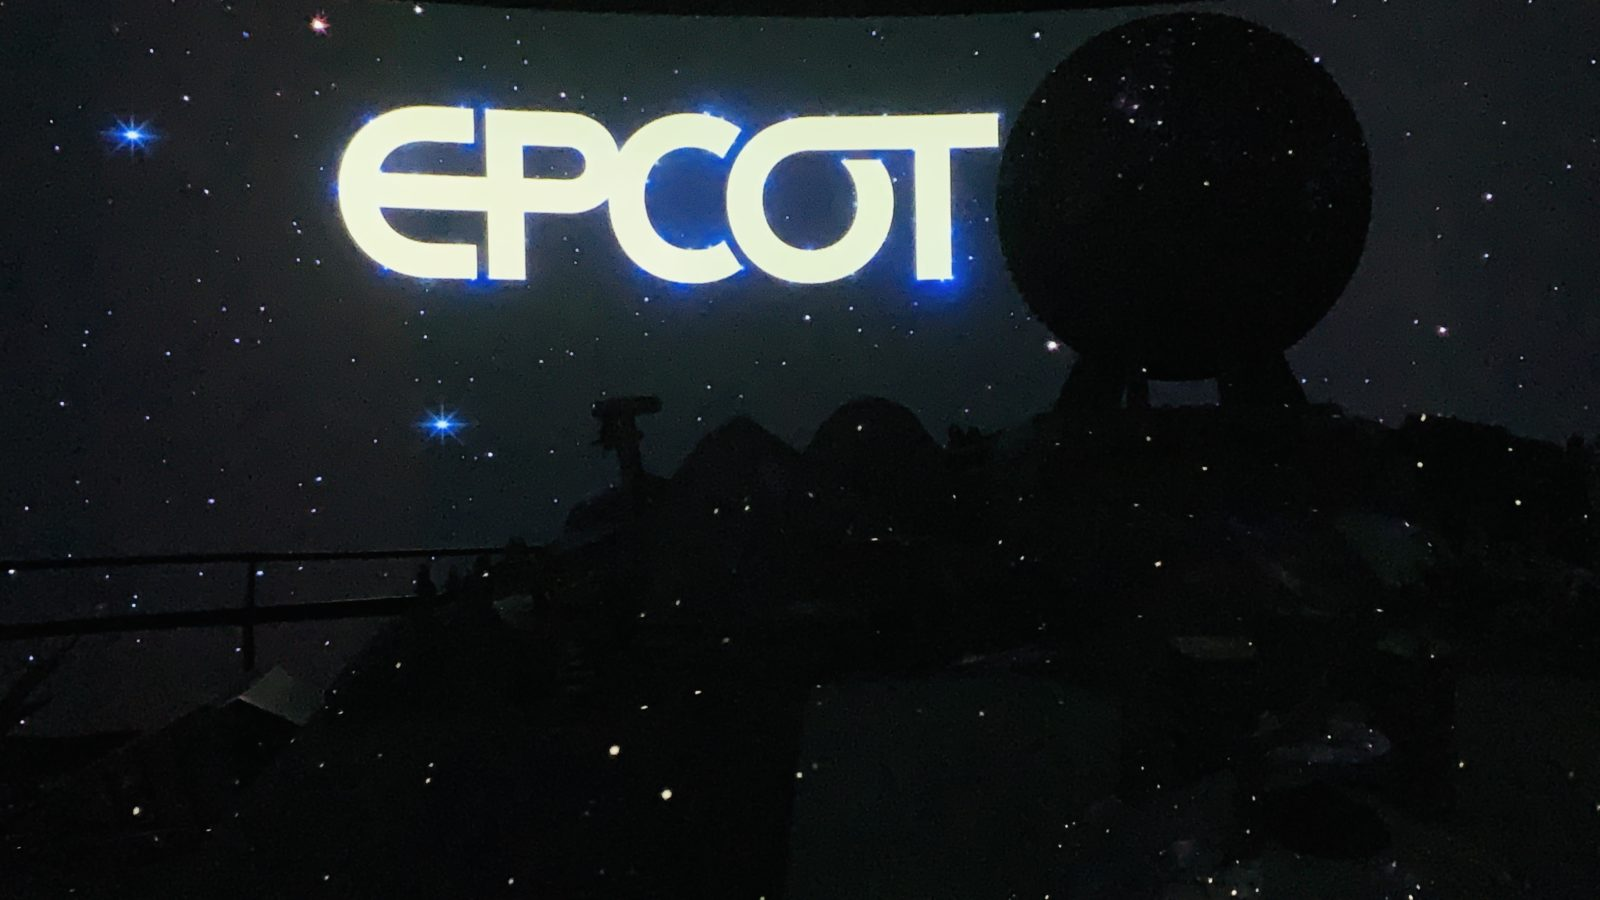 Walt Disney Imagineering Presents The Epcot Experience October 2019